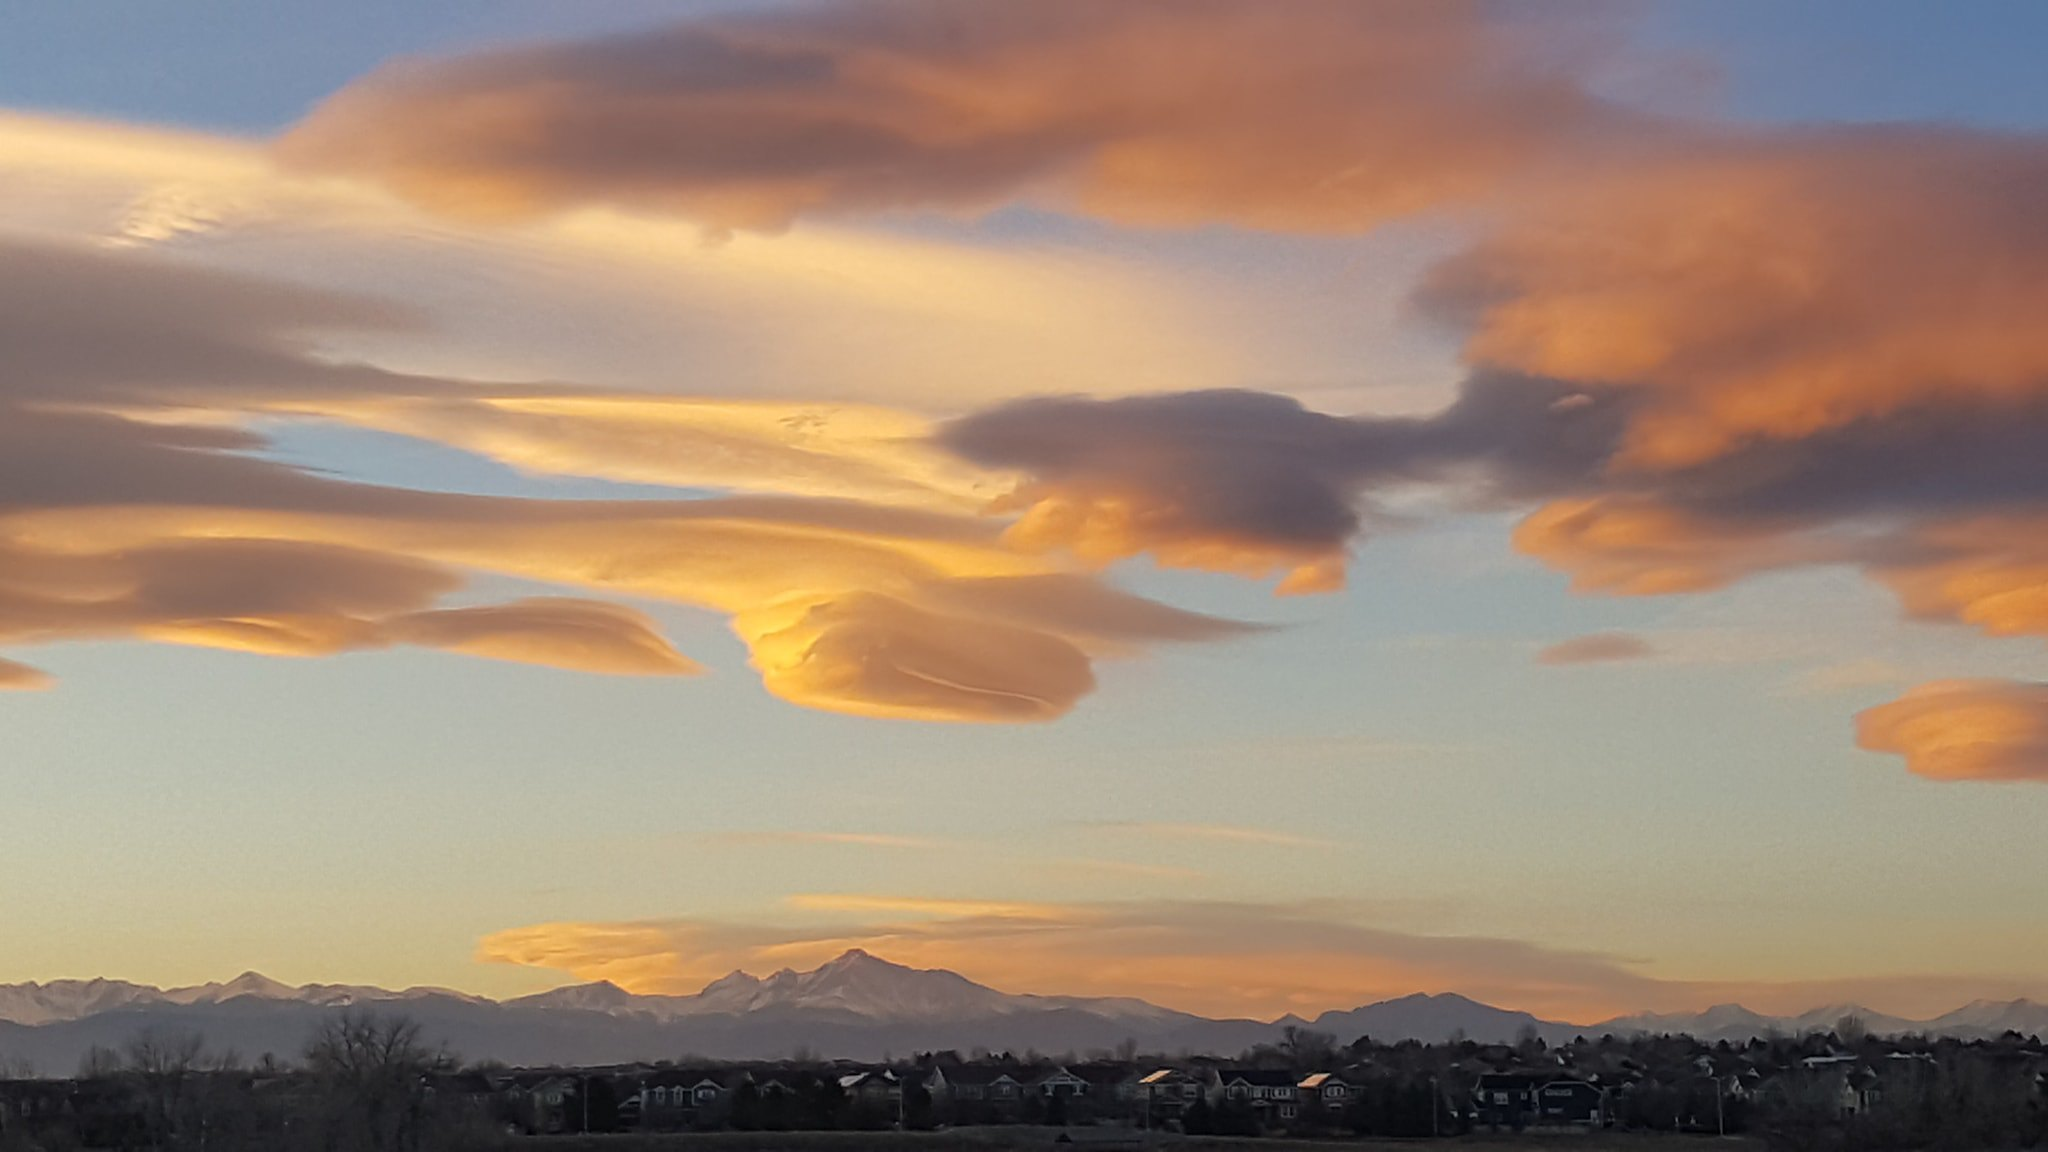 Stunning lenticular clouds at sunset over the Colorado Front Range. (David Canfield)